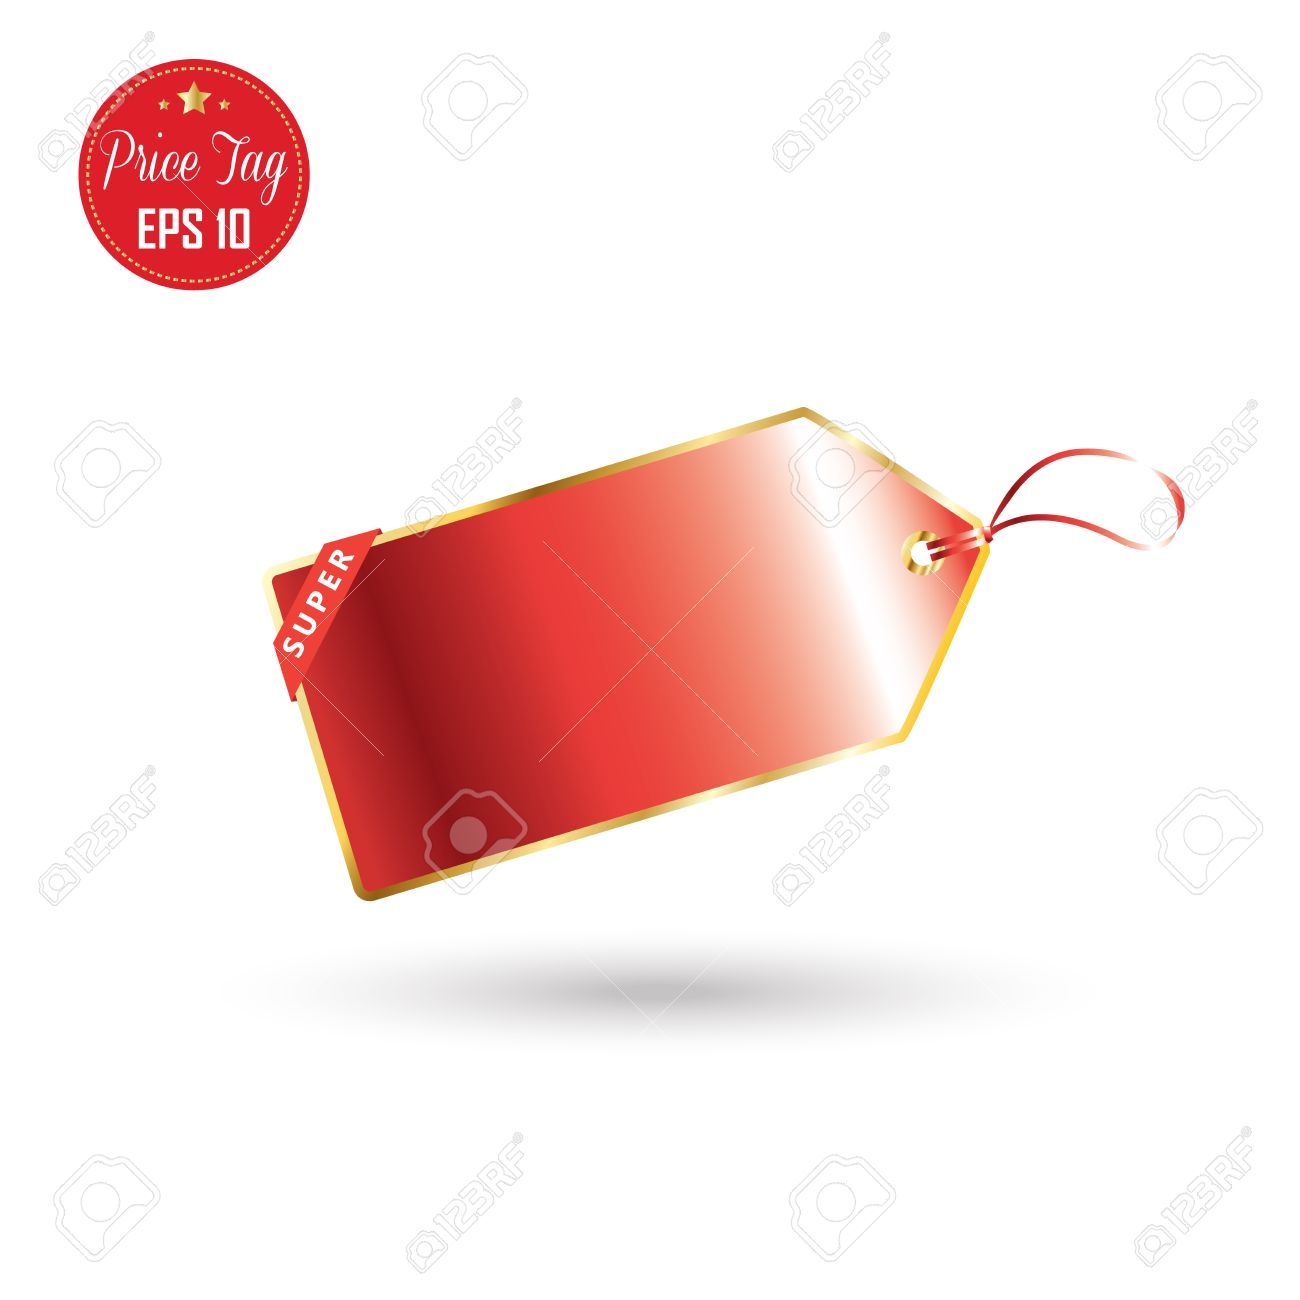 1300x1300 Price Tag. Price Tag Label, Icon, Logo. Red Price Tag Isolated